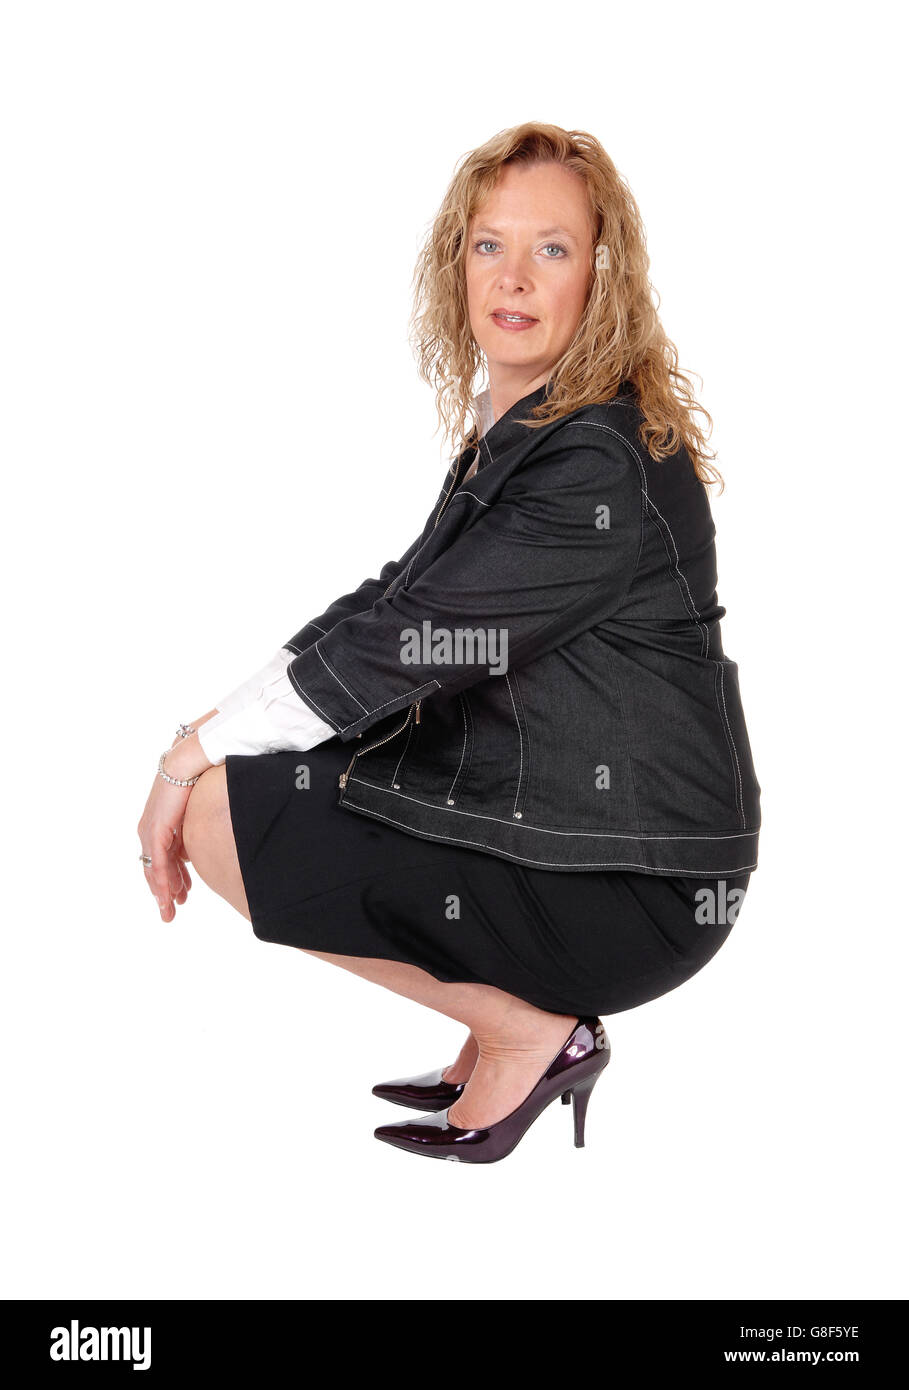 A beautiful blond woman crouching on the floor in a black skirt and navy jacket, isolated for white background. Stock Photo